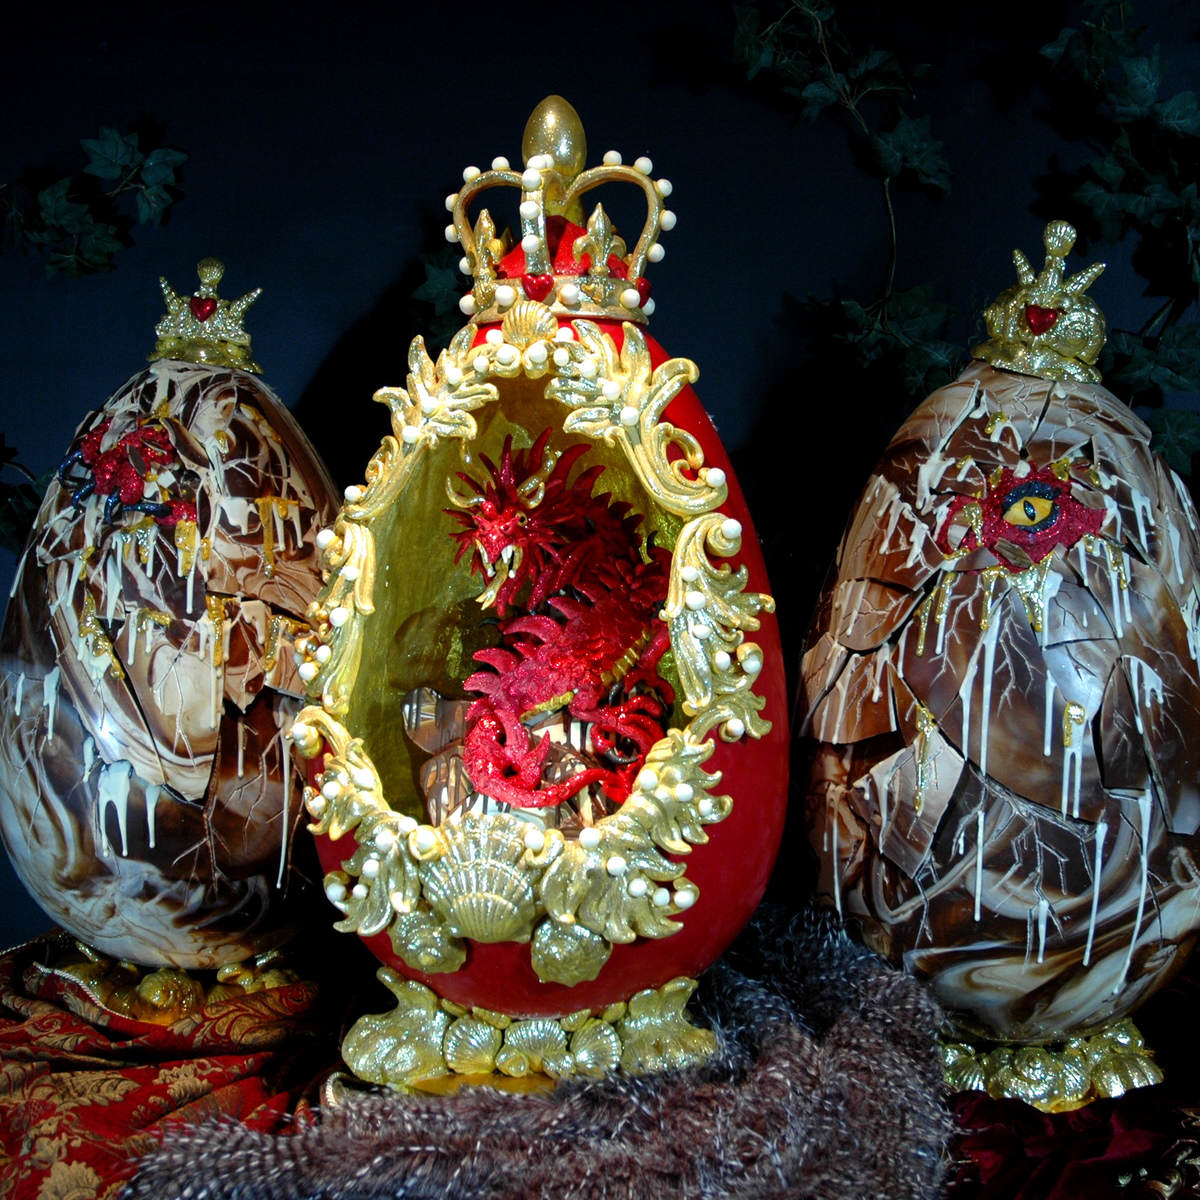 The Worlds Most Expensive Easter Eggs Are Absolutely Ridiculous SWNS FABERGE EASTER 10